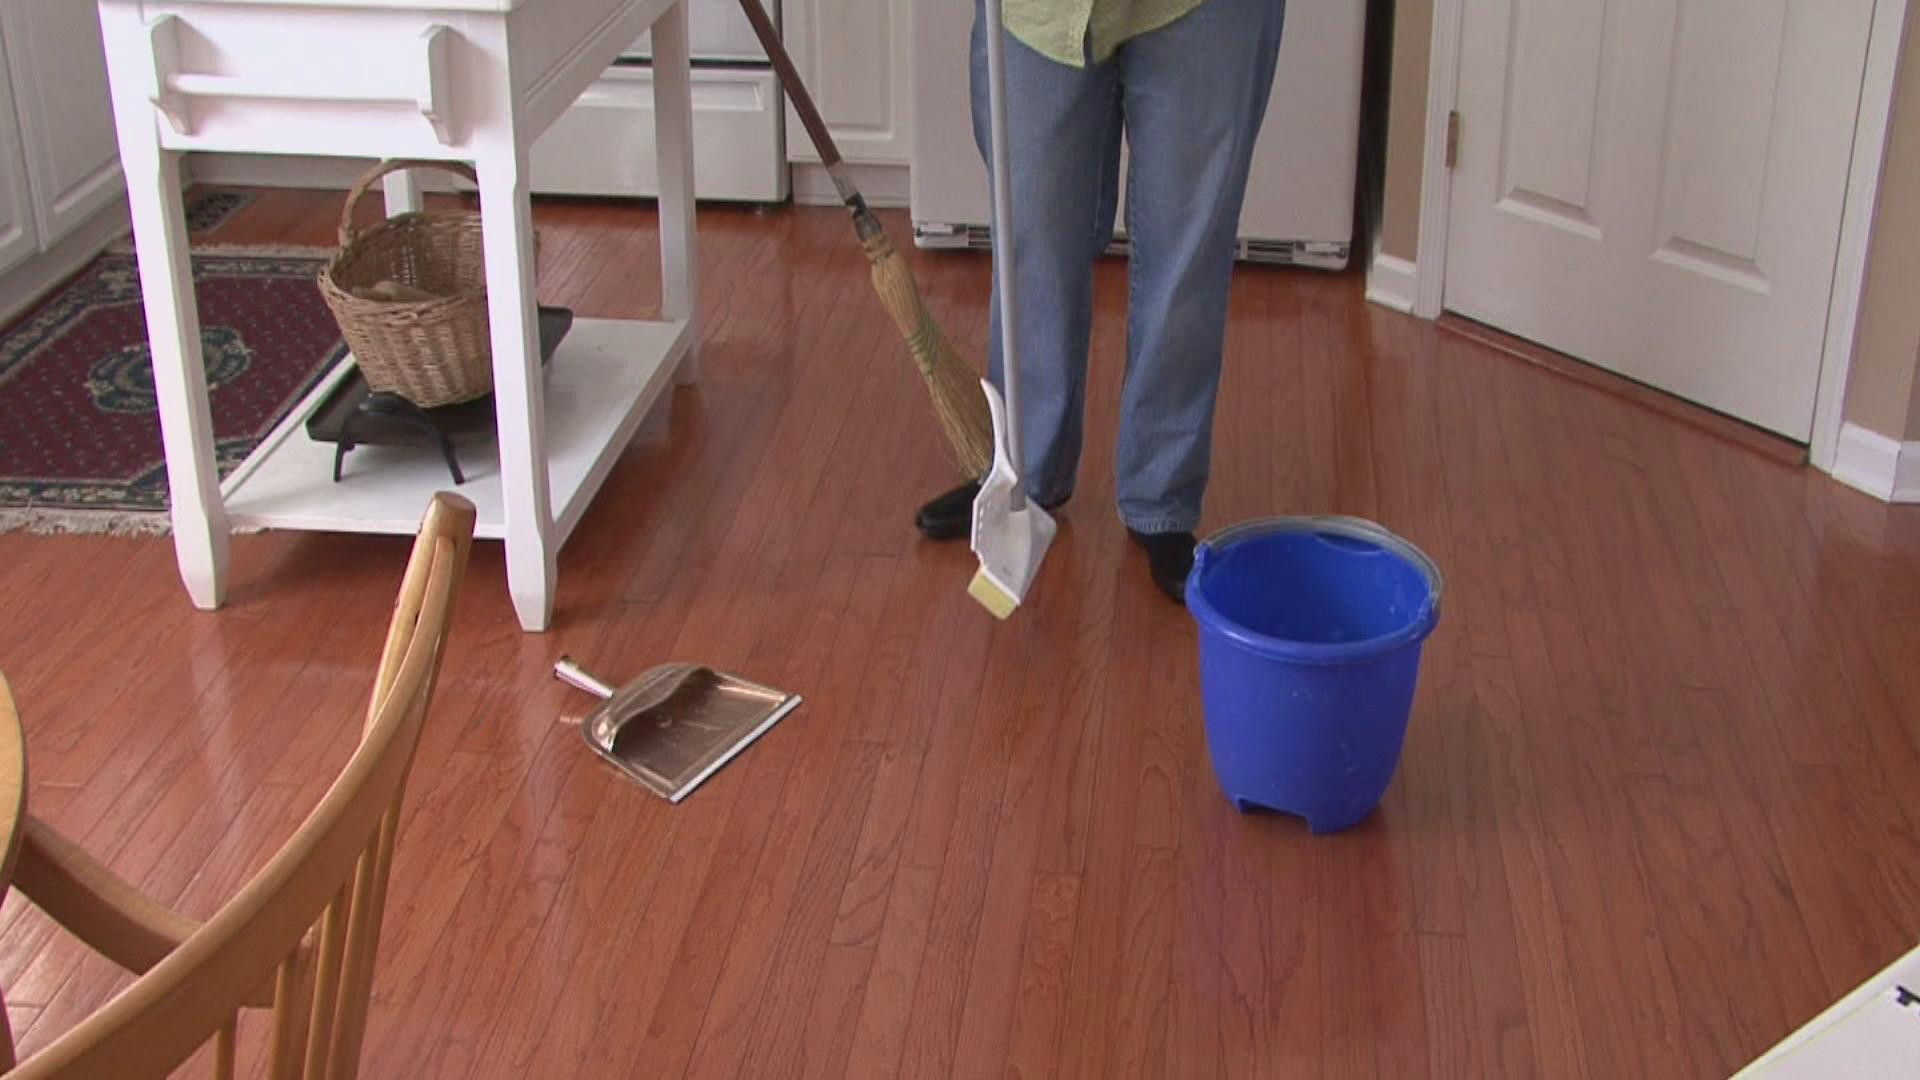 hardwood floor cleaning marietta ga of how to clean wood floors with vinegar floor throughout how to clean wood floors with vinegar hardwood floor cleaning best way to clean hardwood what